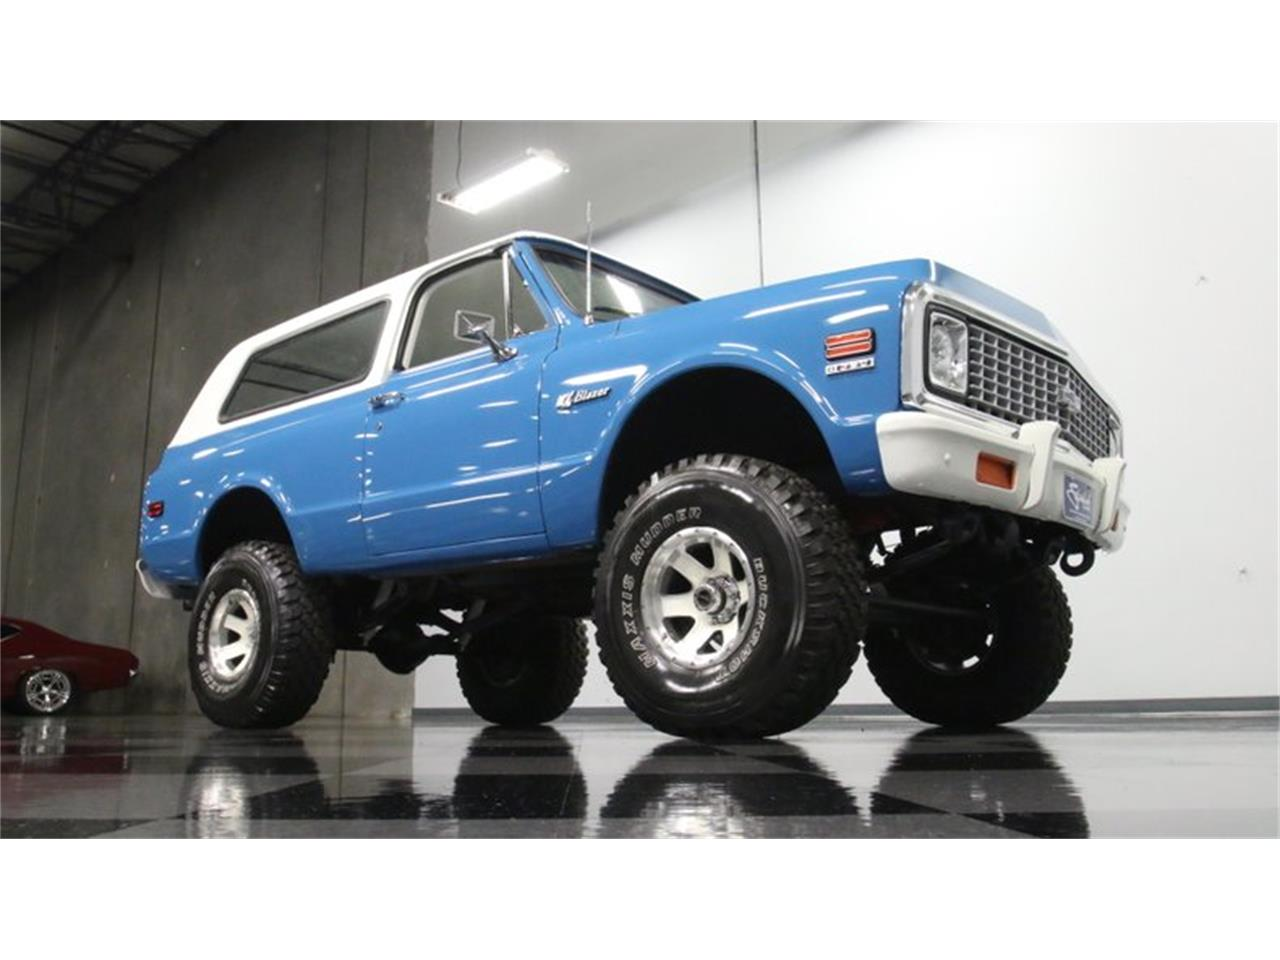 Large Picture of '71 Chevrolet Blazer - $52,995.00 - PZLZ